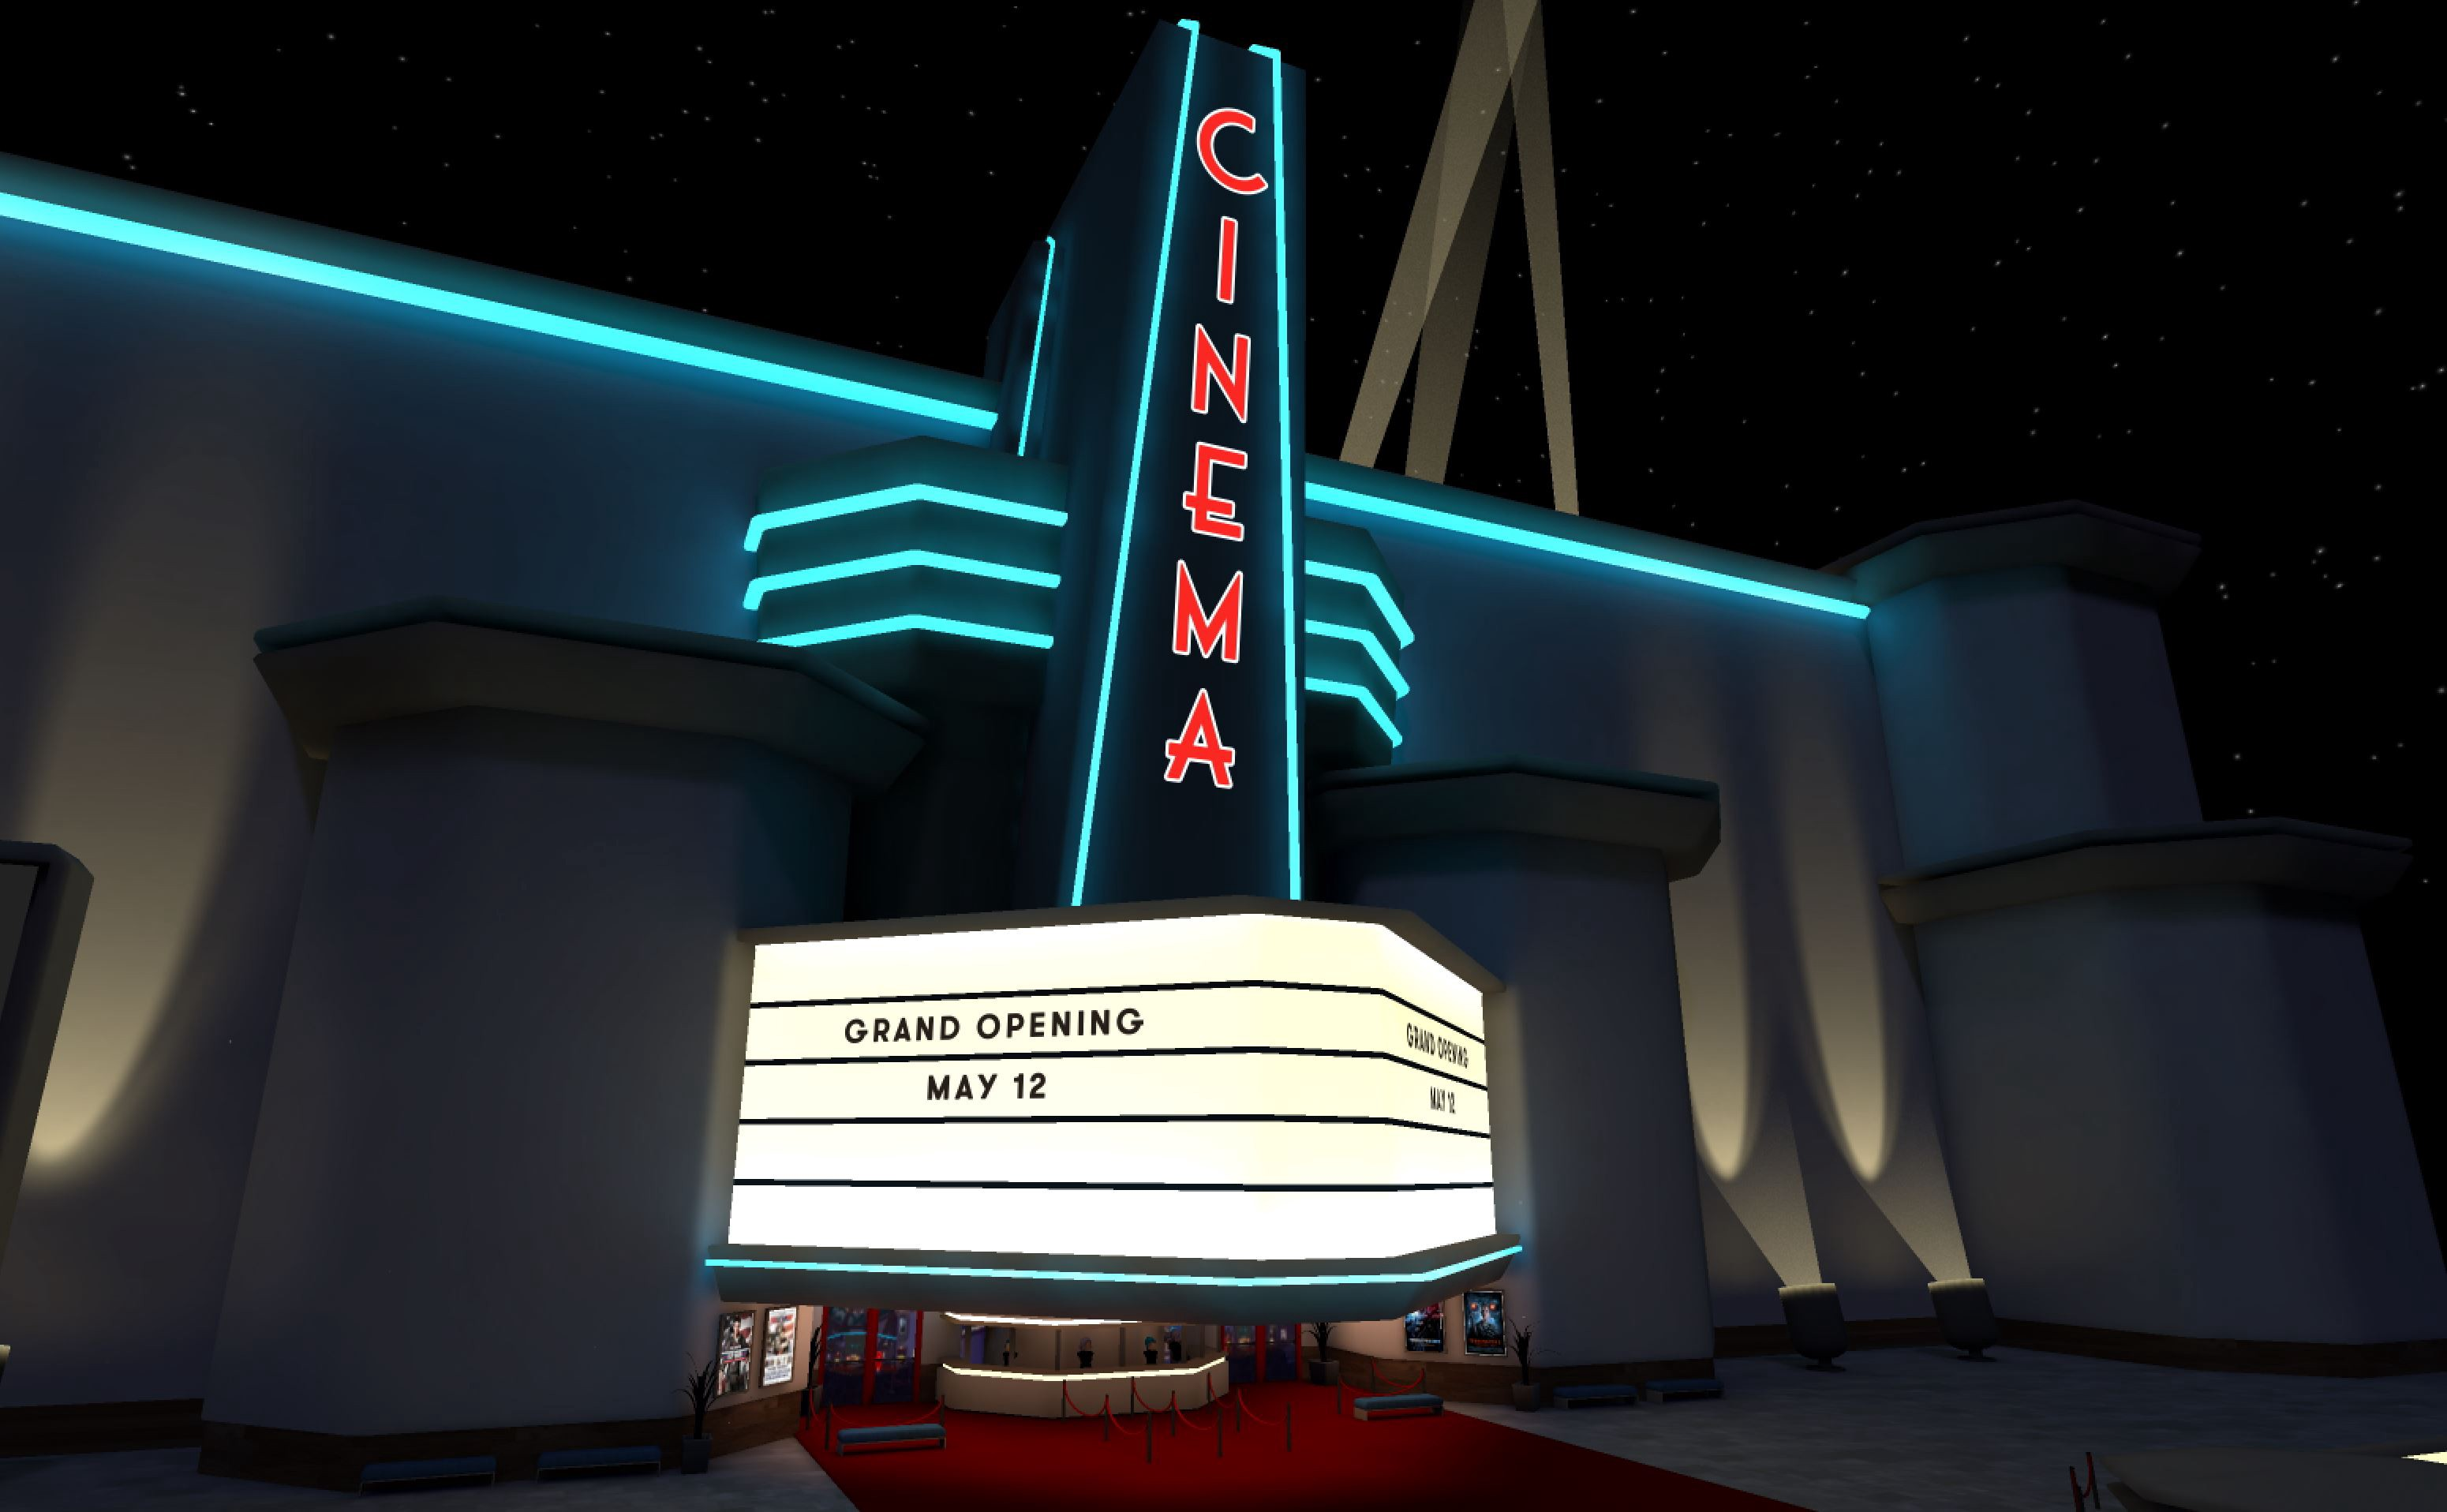 Bigscreen is launching today on Oculus Go and Samsung GearVR